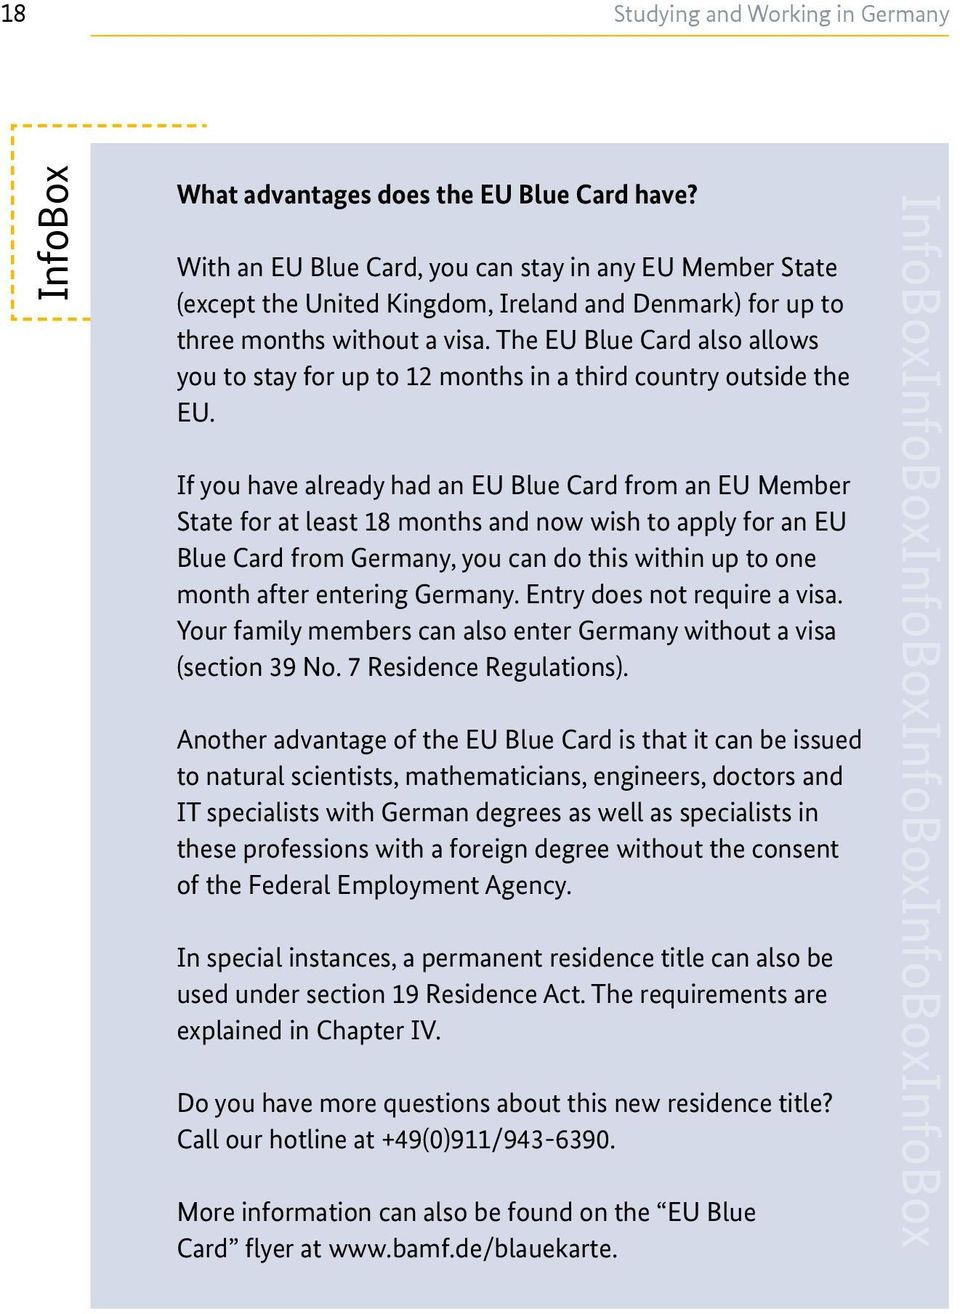 The EU Blue Card also allows you to stay for up to 12 months in a third country outside the EU.